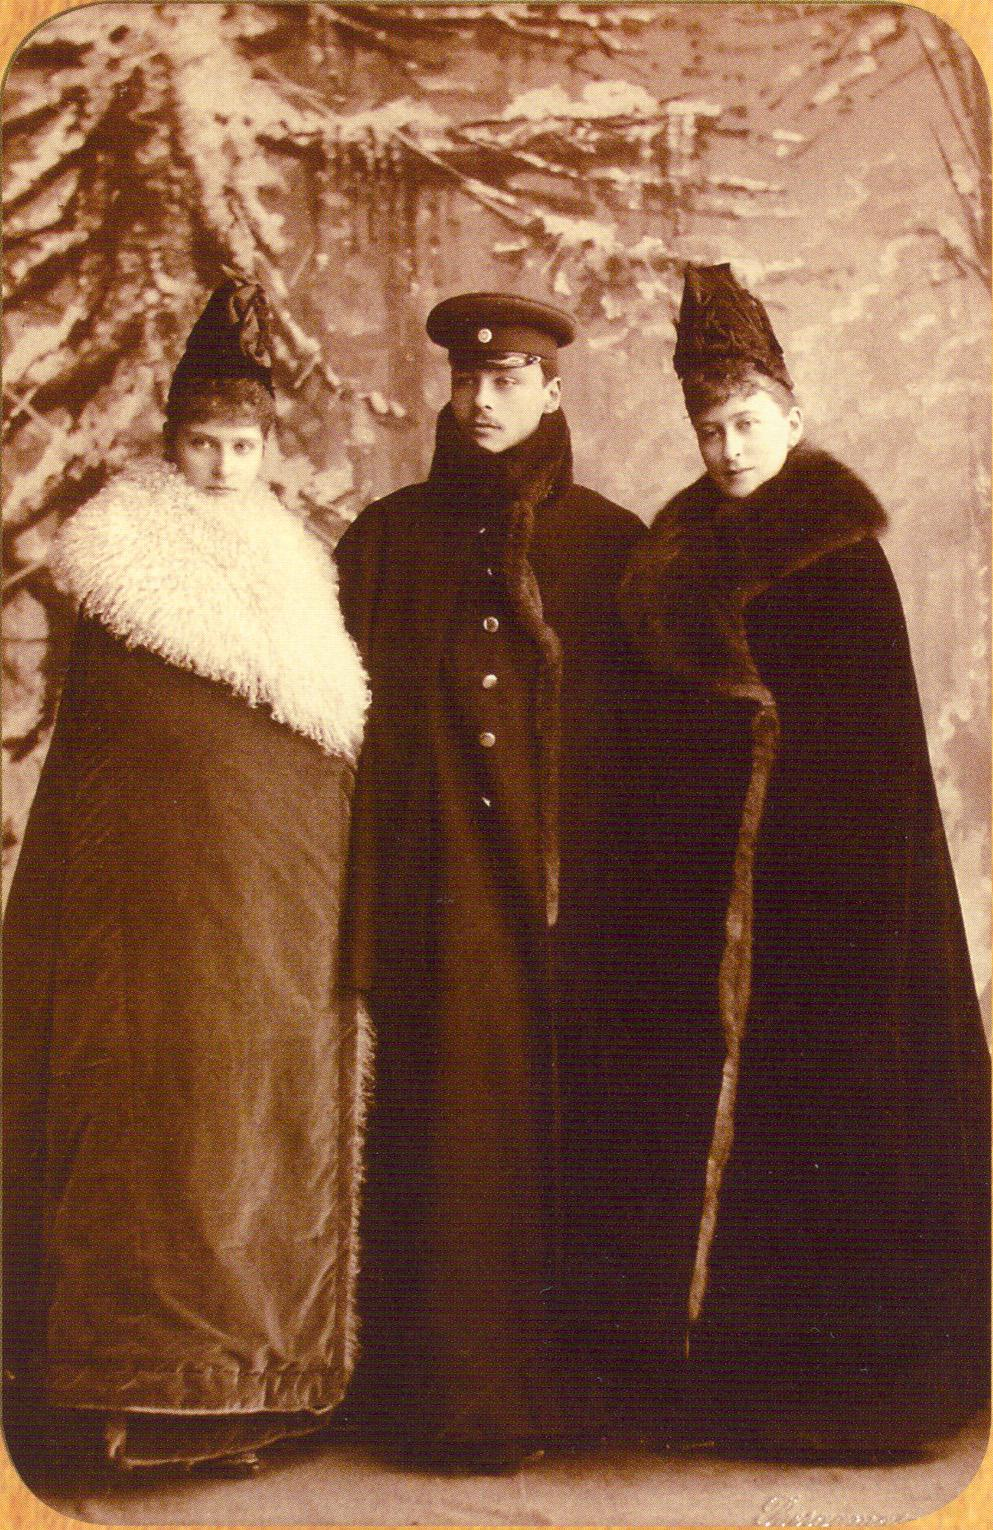 Russian royalty in wintergarb